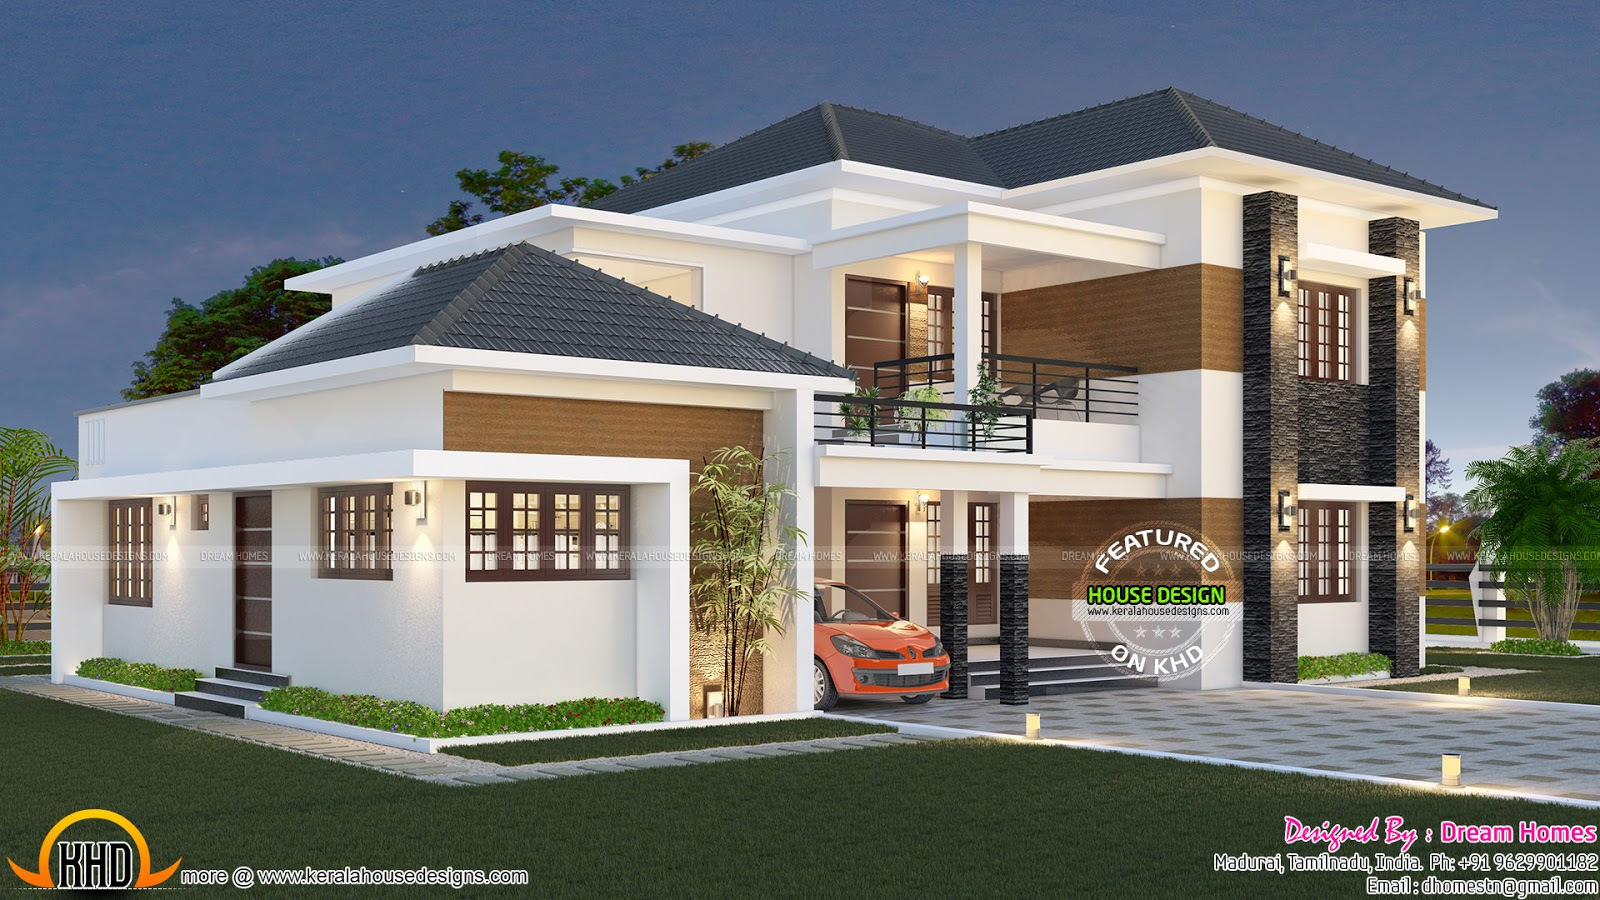 Elegant south indian villa kerala home design and floor Villa floor plans india